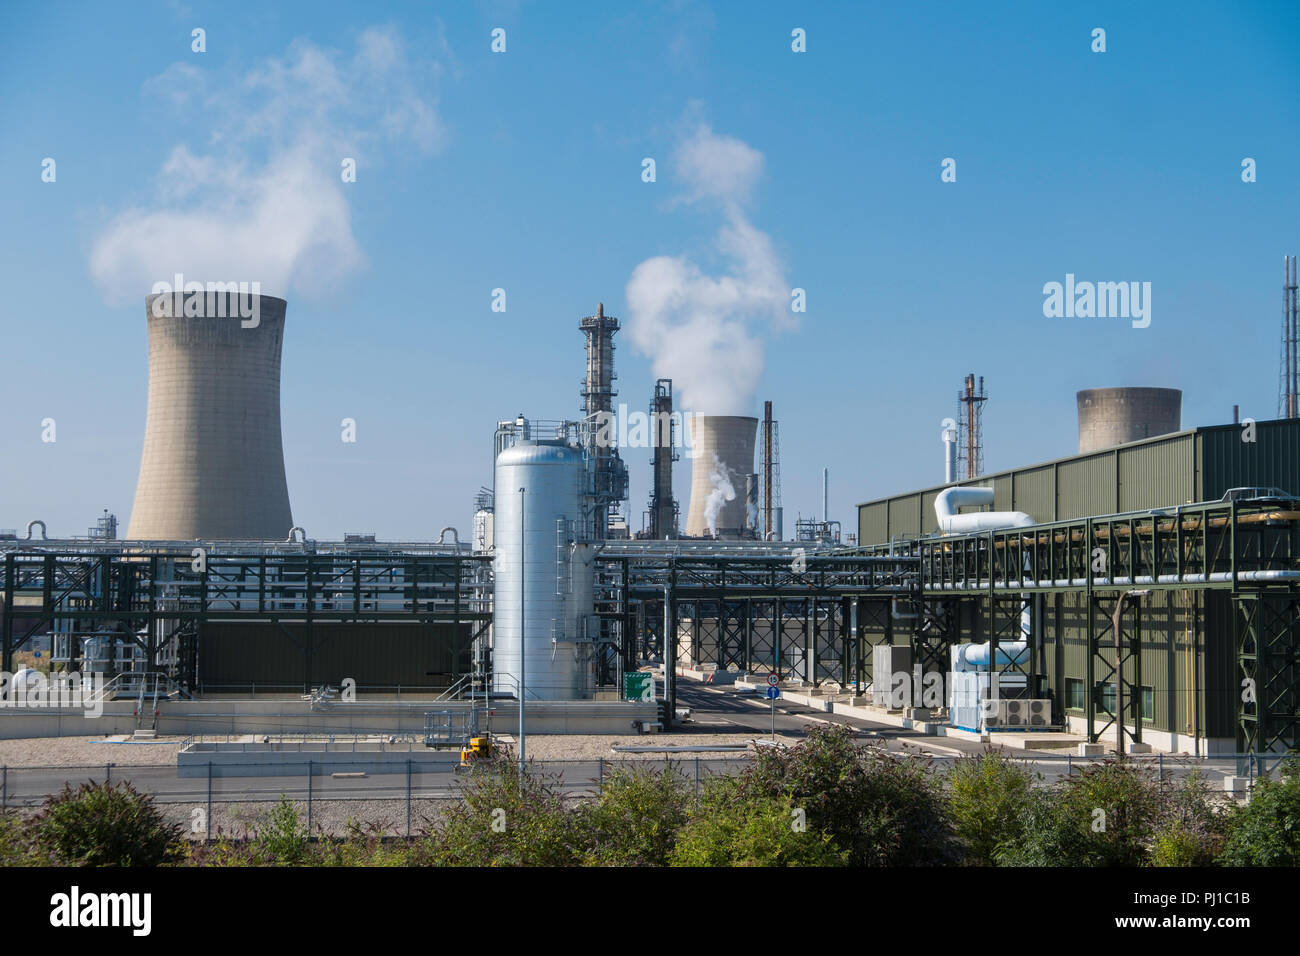 SNF UK plant at their Billingham Production site on Teeside. - Stock Image